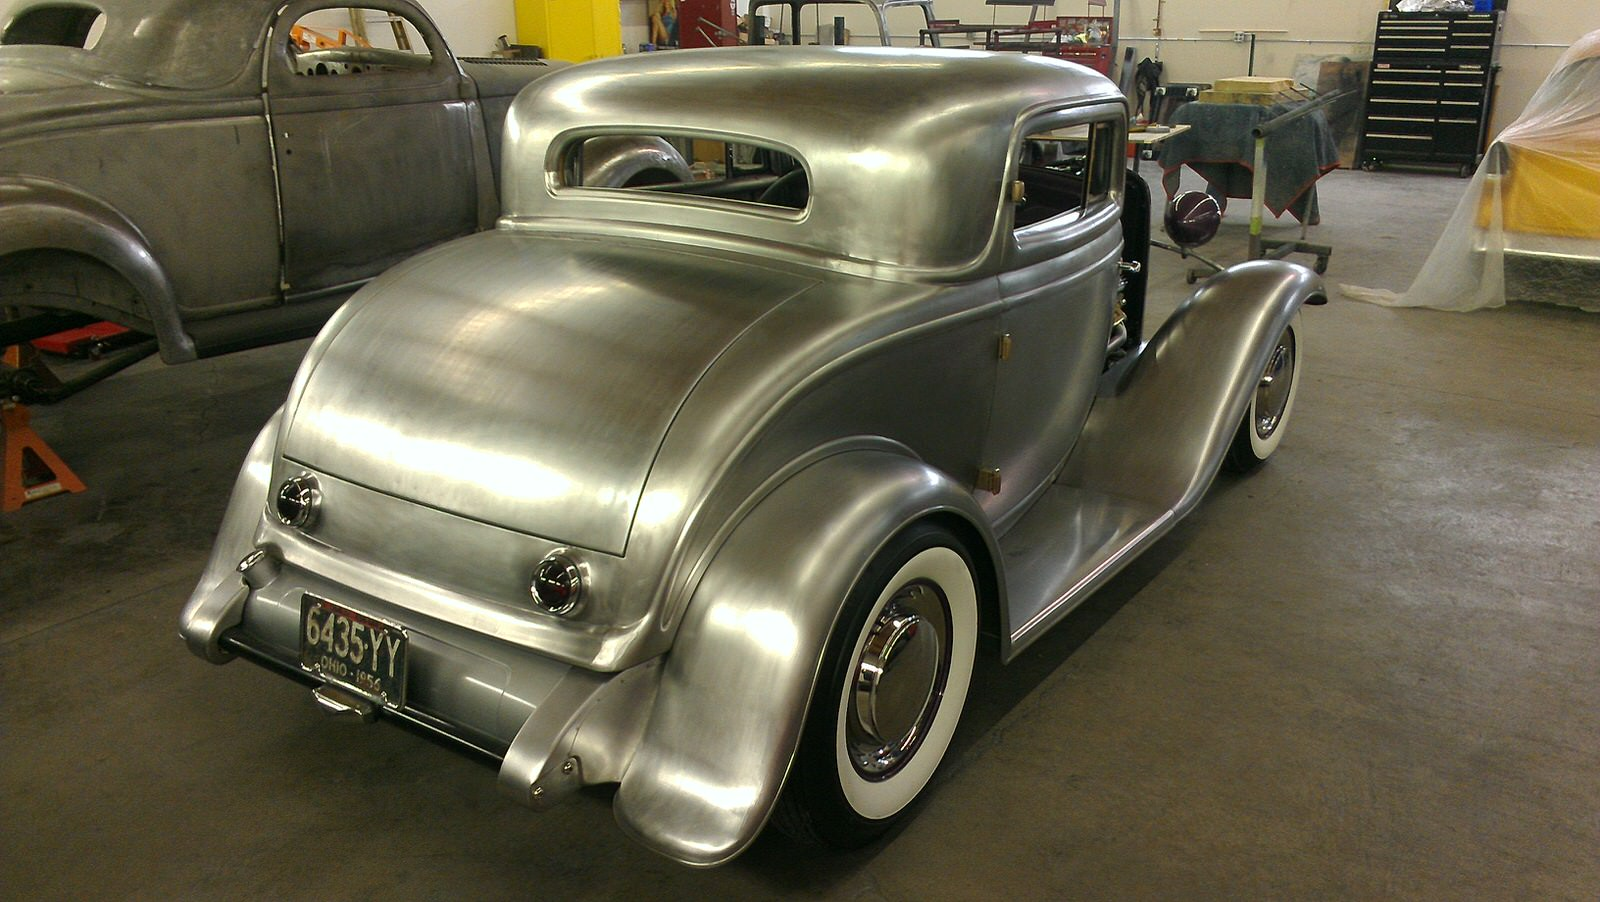 Richard Munz 1932 Ford 3-Window (Bill Breece Coupe) - South City Rod and Custom